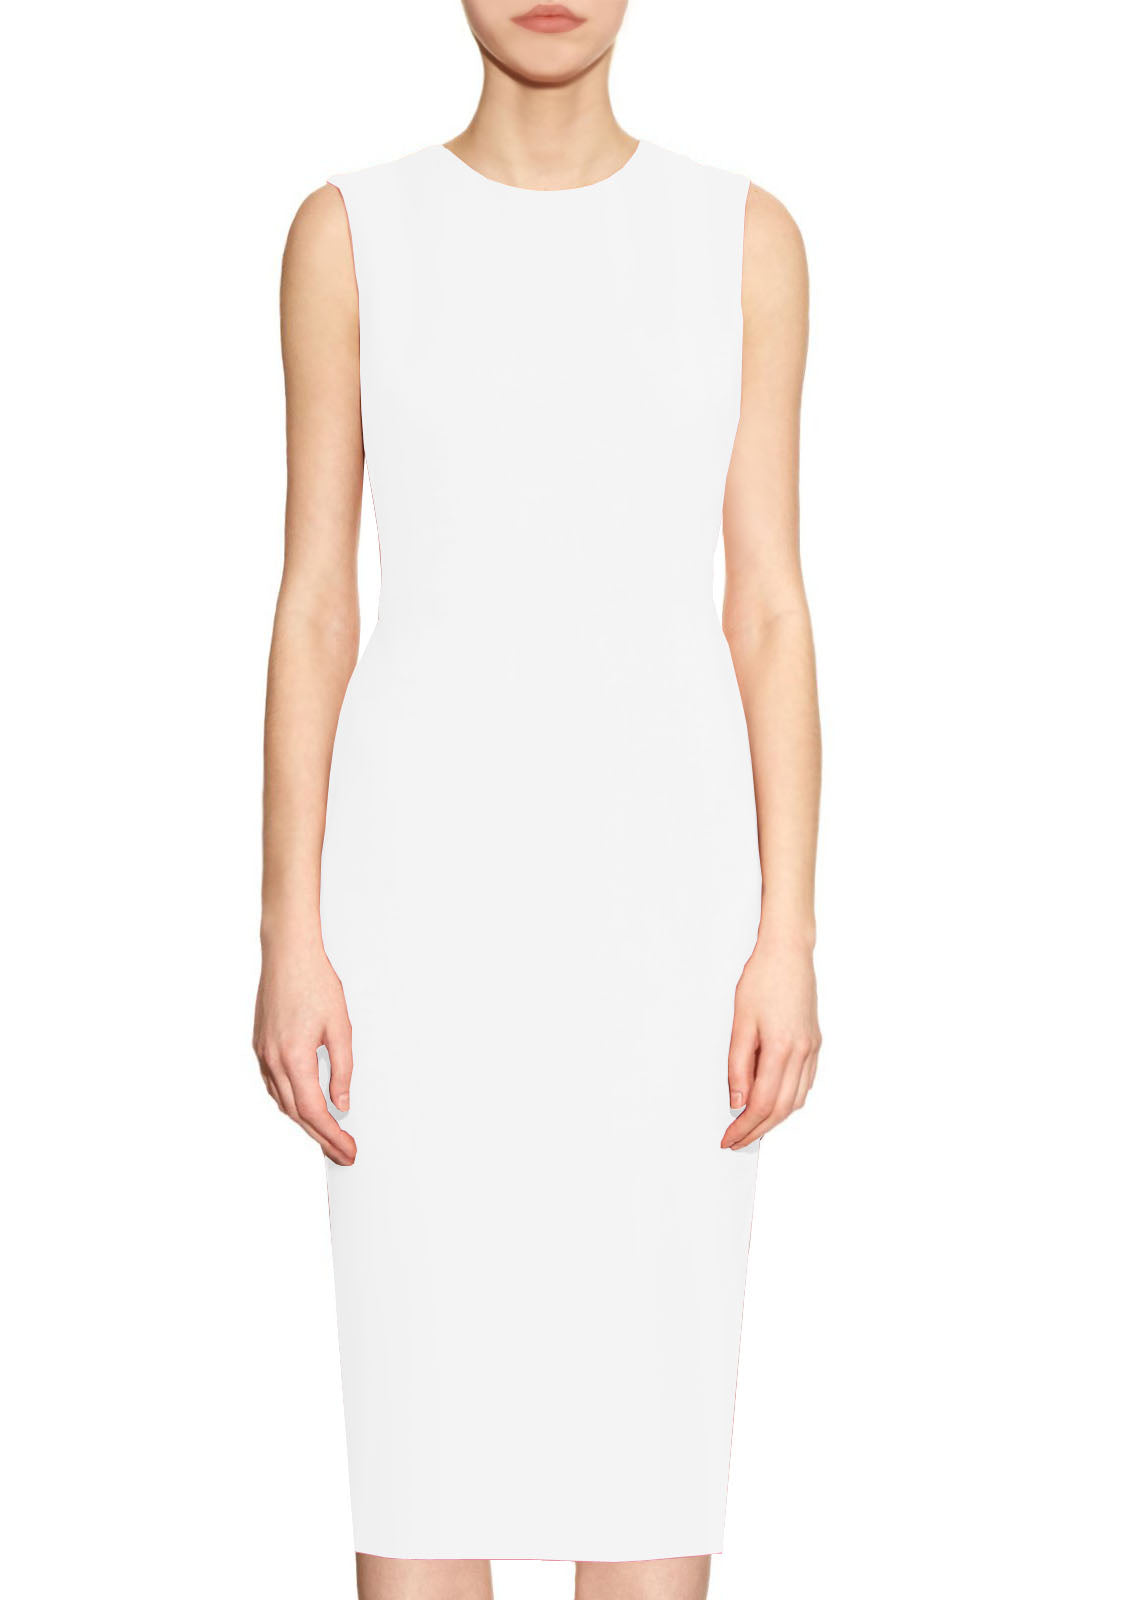 White Basic Sheath Dress - Krew